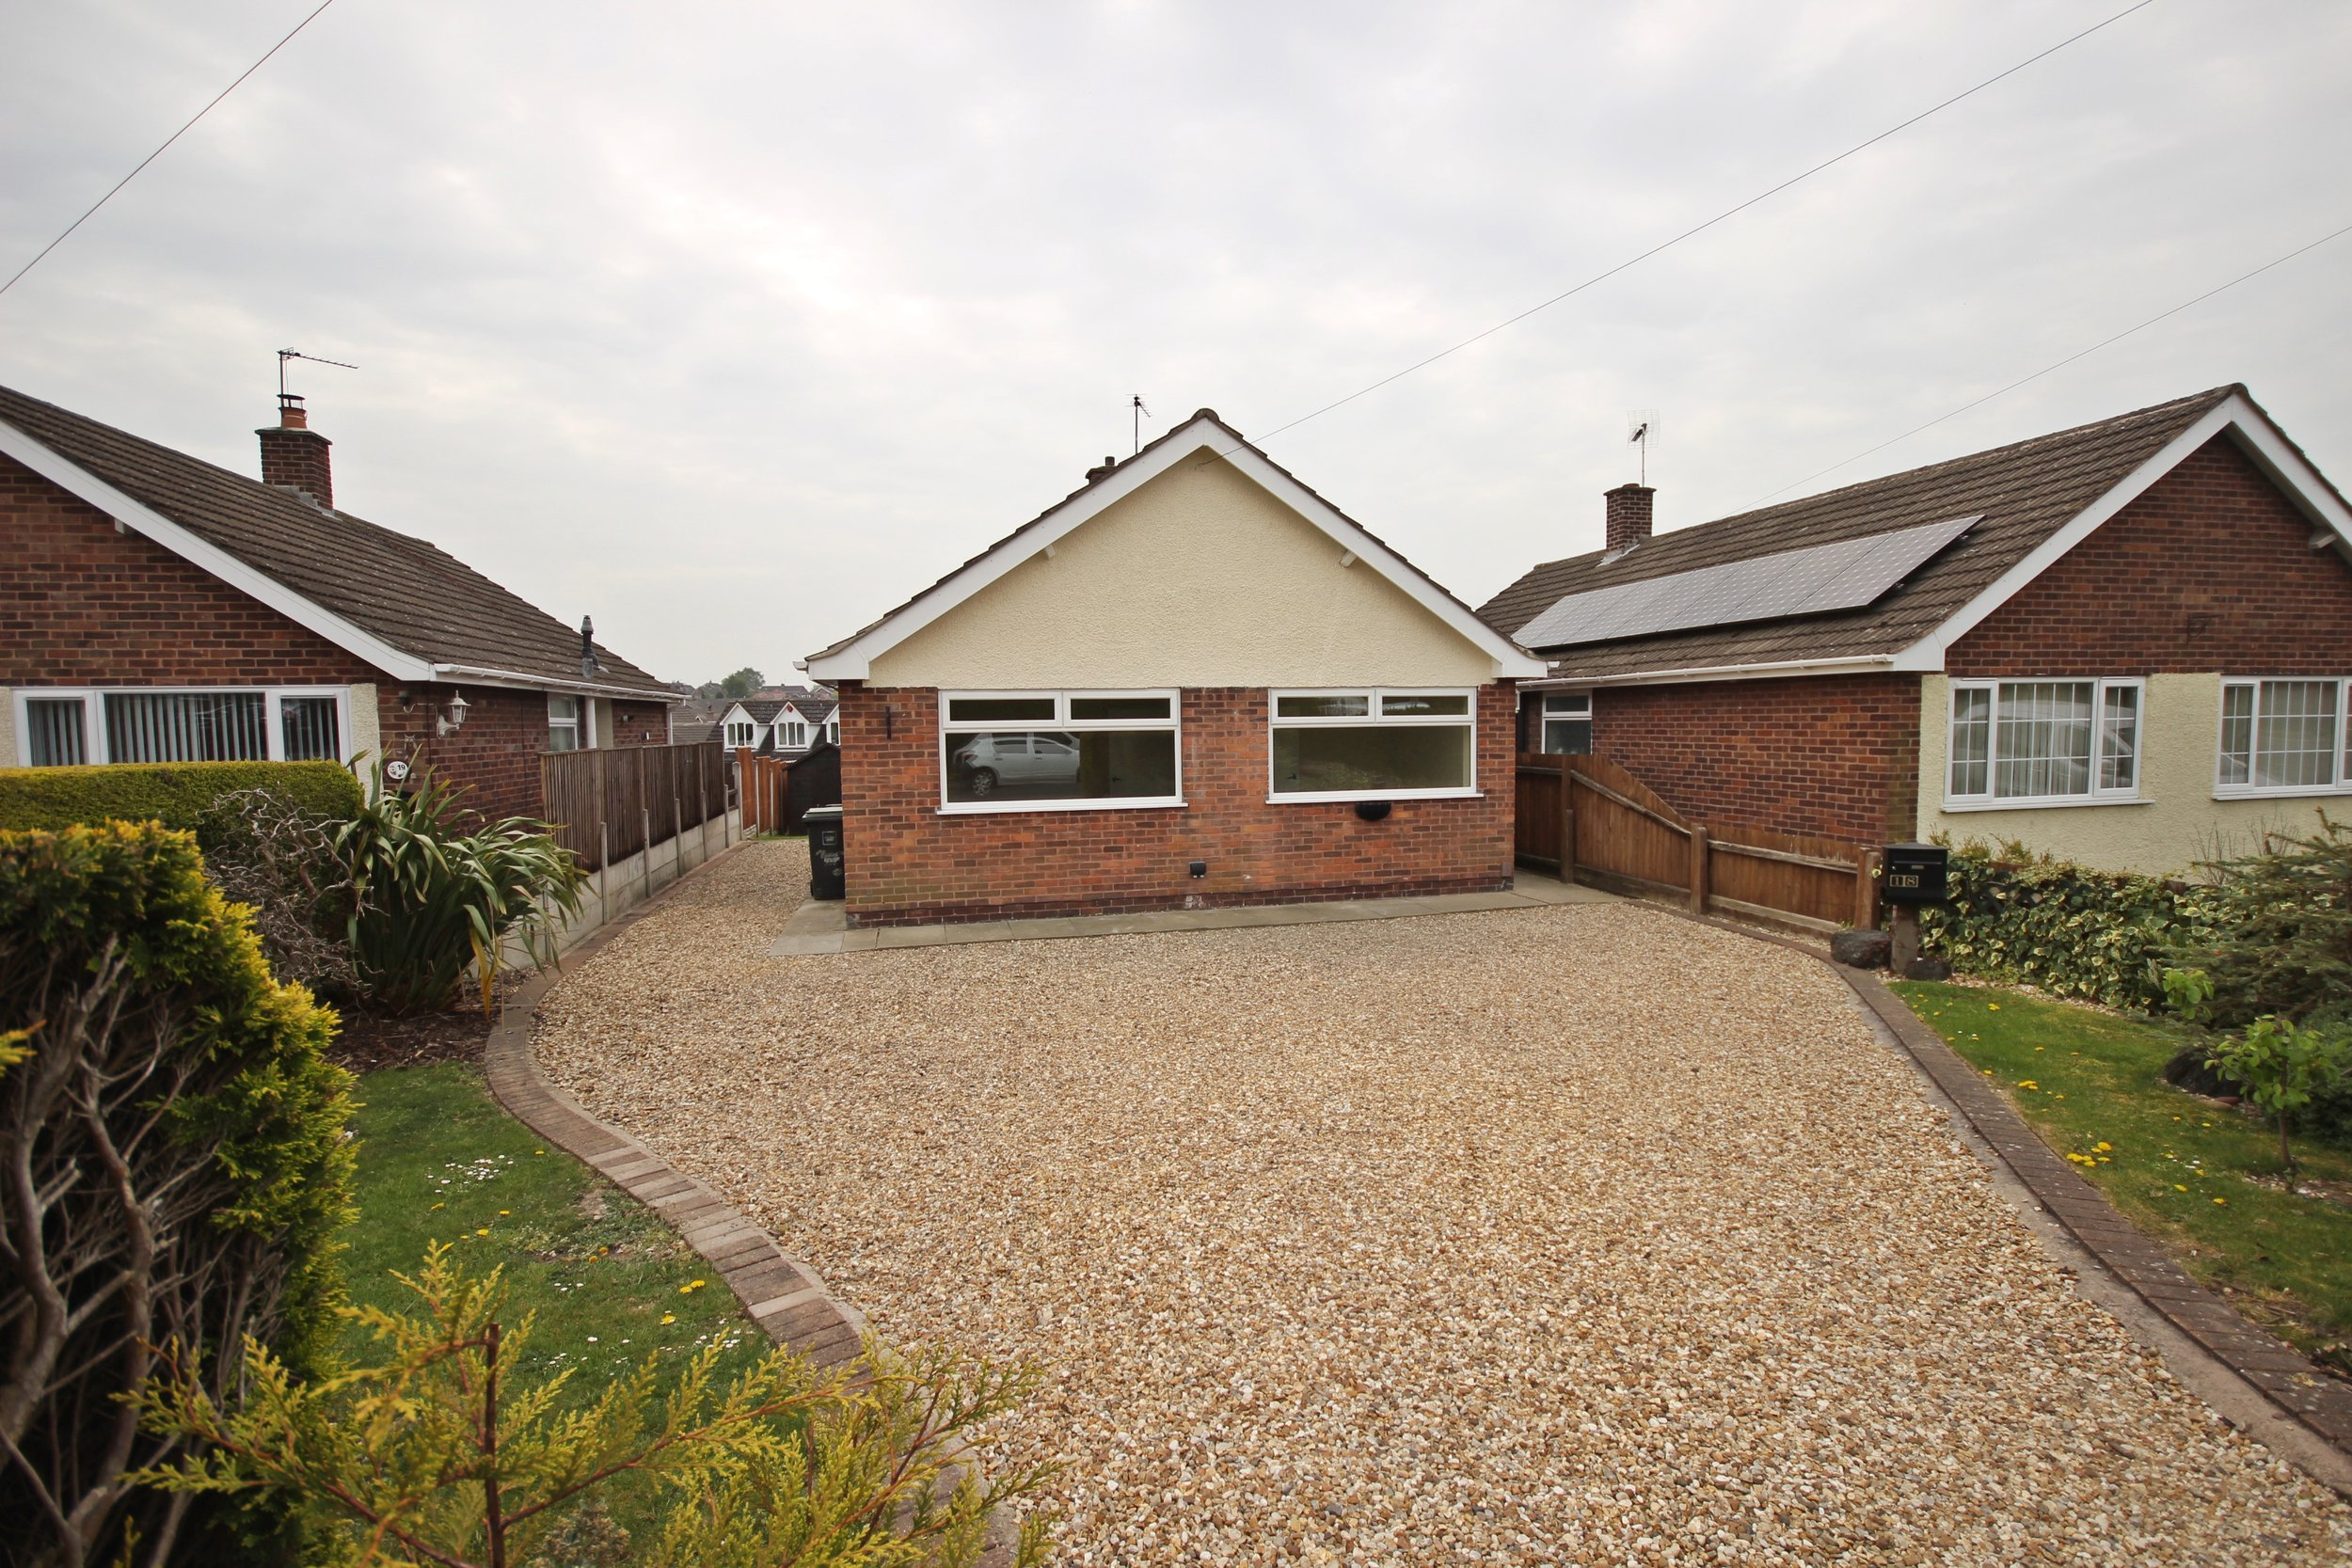 IT'S GONE! £575pcm St John's Close, Brinsley, Notts, NG16 5BH - A lovely home, recently redecorated throughout! Offering spacious rooms and a private rear garden topped with driveway parking located in a peaceful area, this property is not to be missed! EPC rating D.